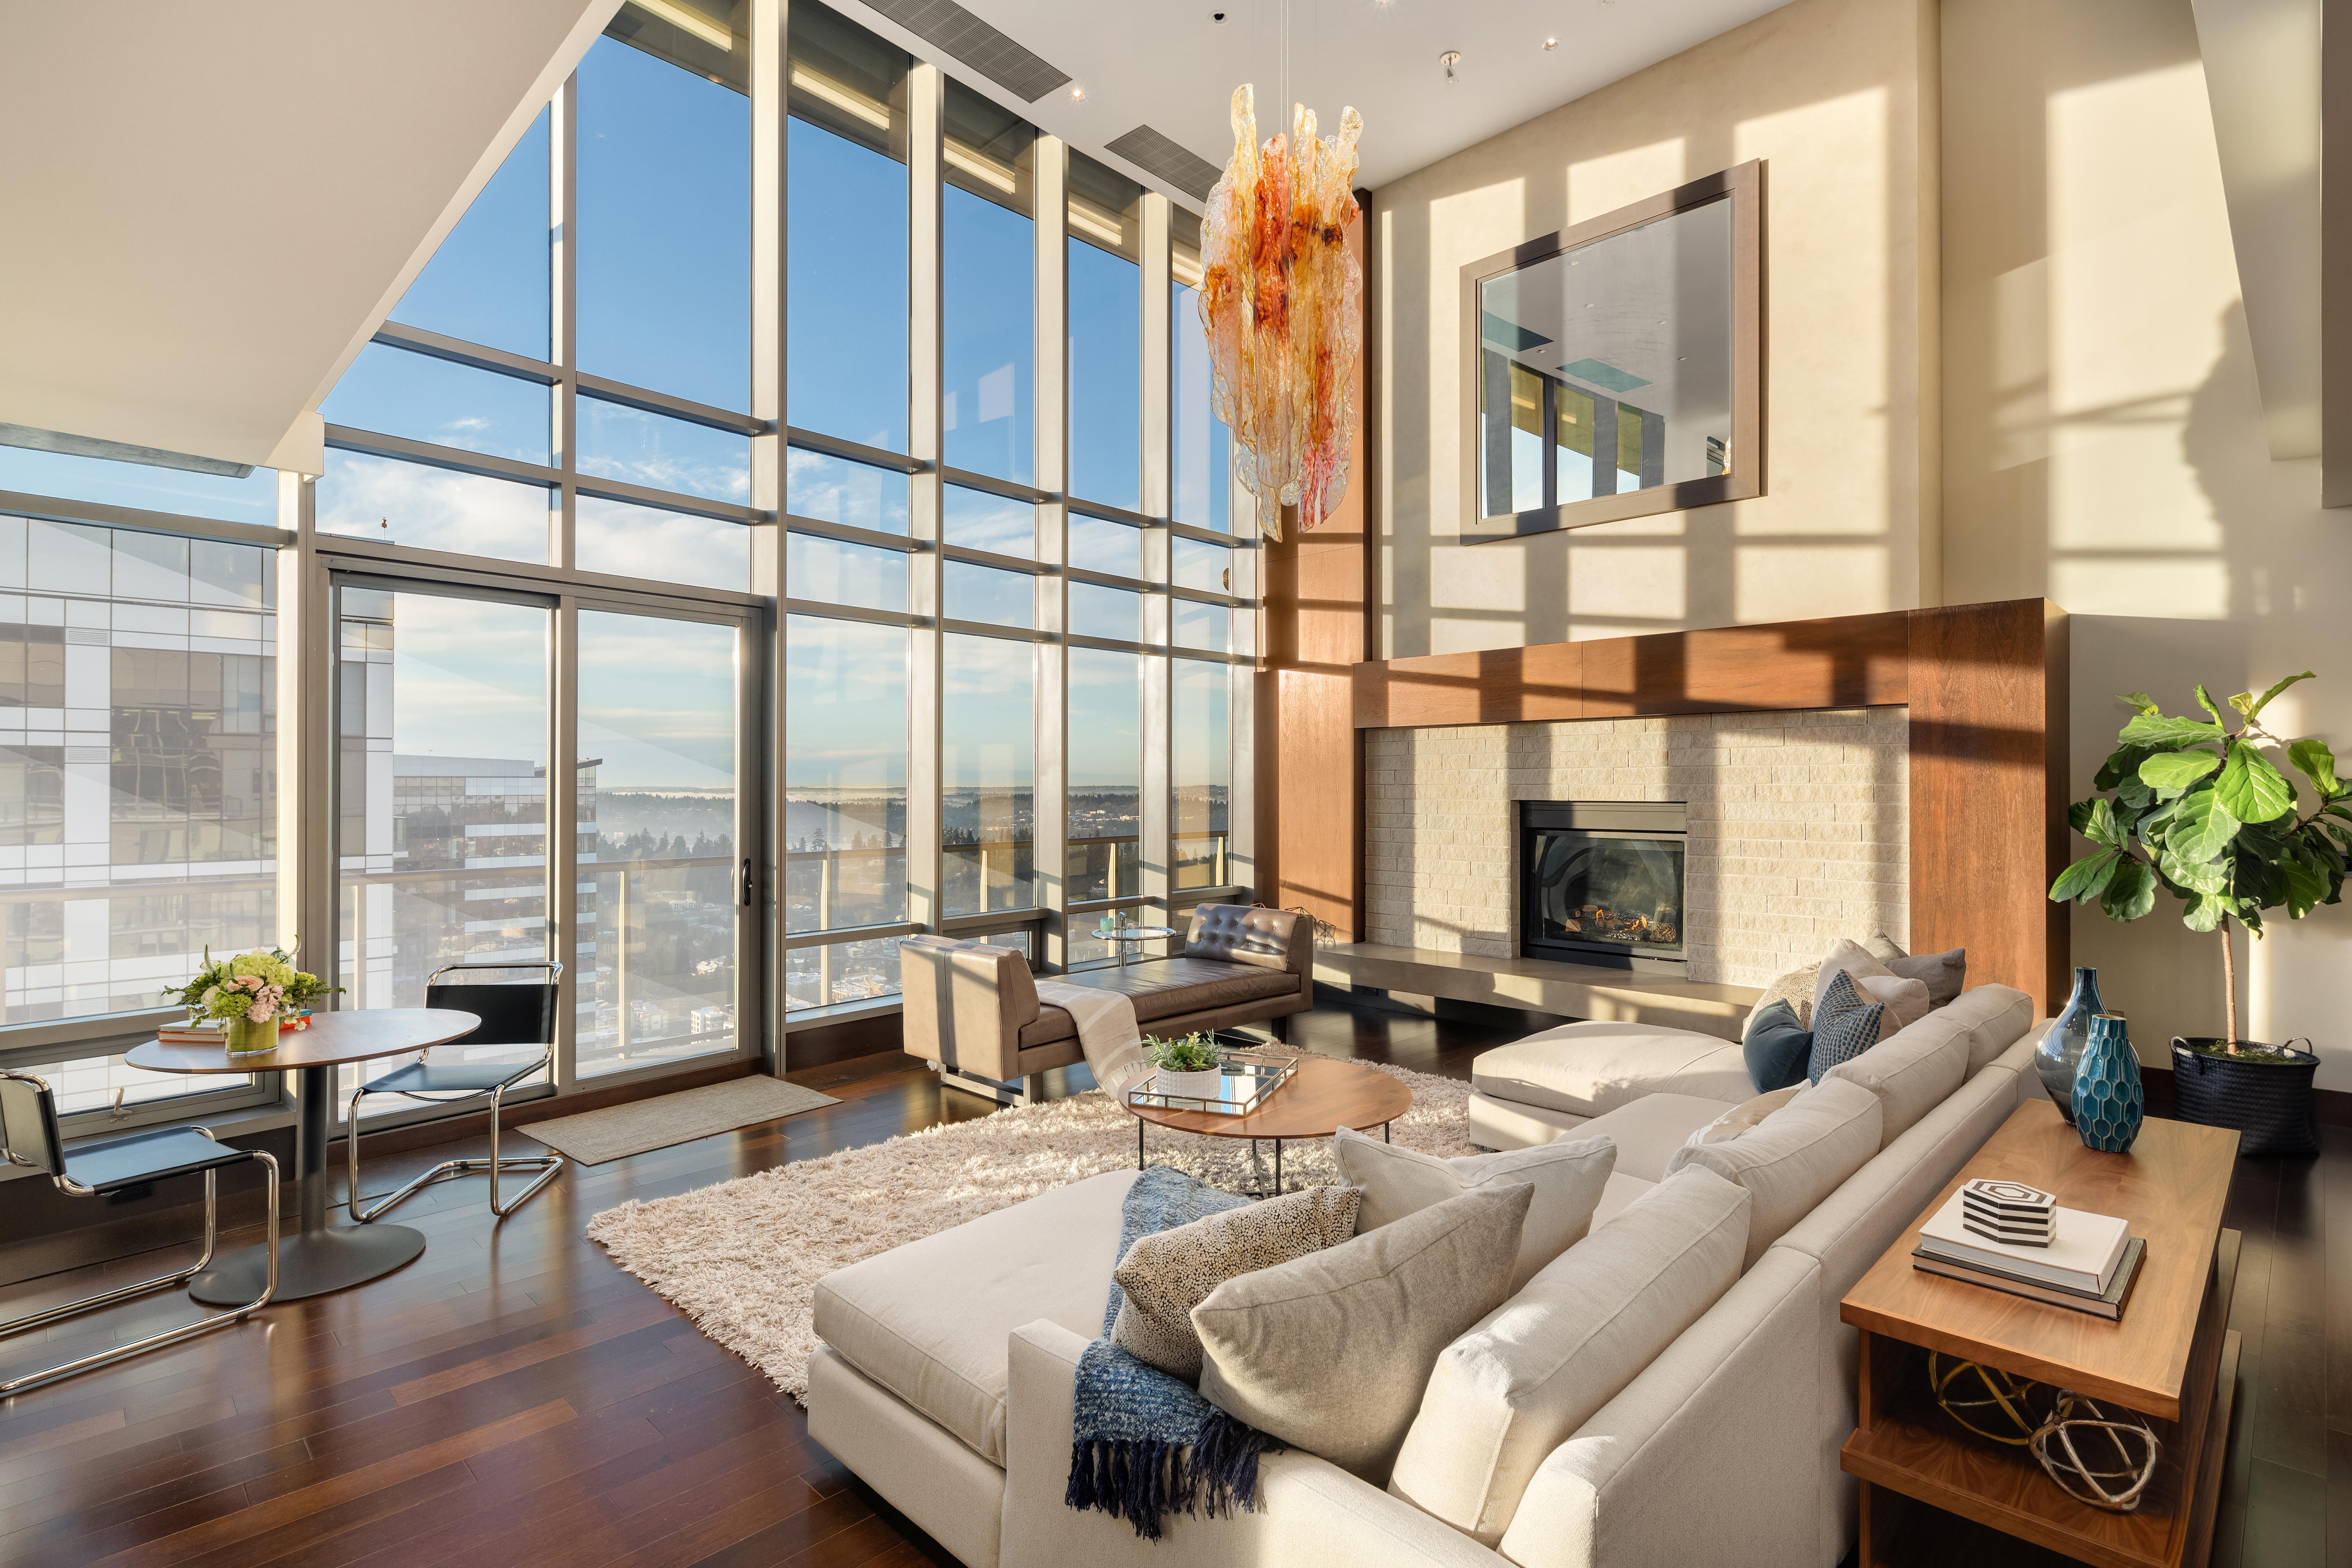 The most recent inductee into the National Baseball Hall of Fame, Edgar Martinez has just listed his BEAUTIFUL penthouse in Lincoln Tower for $9.78m. This Bellevue beauty is two stories with 2 beds/2.5 baths and is a whopping 4,058 square feet. The condo has soaring ceilings and walls, boasts lake, city and mountain views, an expansive great room and kitchen and a luxurious master suite that overlooks it all! Other features include a personal screening room in the home, home automation, a 24-hour concierge, Westin services and amenities included, fitness center and pool. Not too shabby, eh? Listed by Compass,<a  href=&quot;https://www.compass.com/listing/650-bellevue-way-northeast-unit-4102-bellevue-wa-98004/171745540504155953/&quot; target=&quot;_blank&quot; title=&quot;https://www.compass.com/listing/650-bellevue-way-northeast-unit-4102-bellevue-wa-98004/171745540504155953/&quot;>{&amp;nbsp;}visit this listing by searching for MLS #1402559</a>. (Image: Andrew O'Neill of Clarity NW)